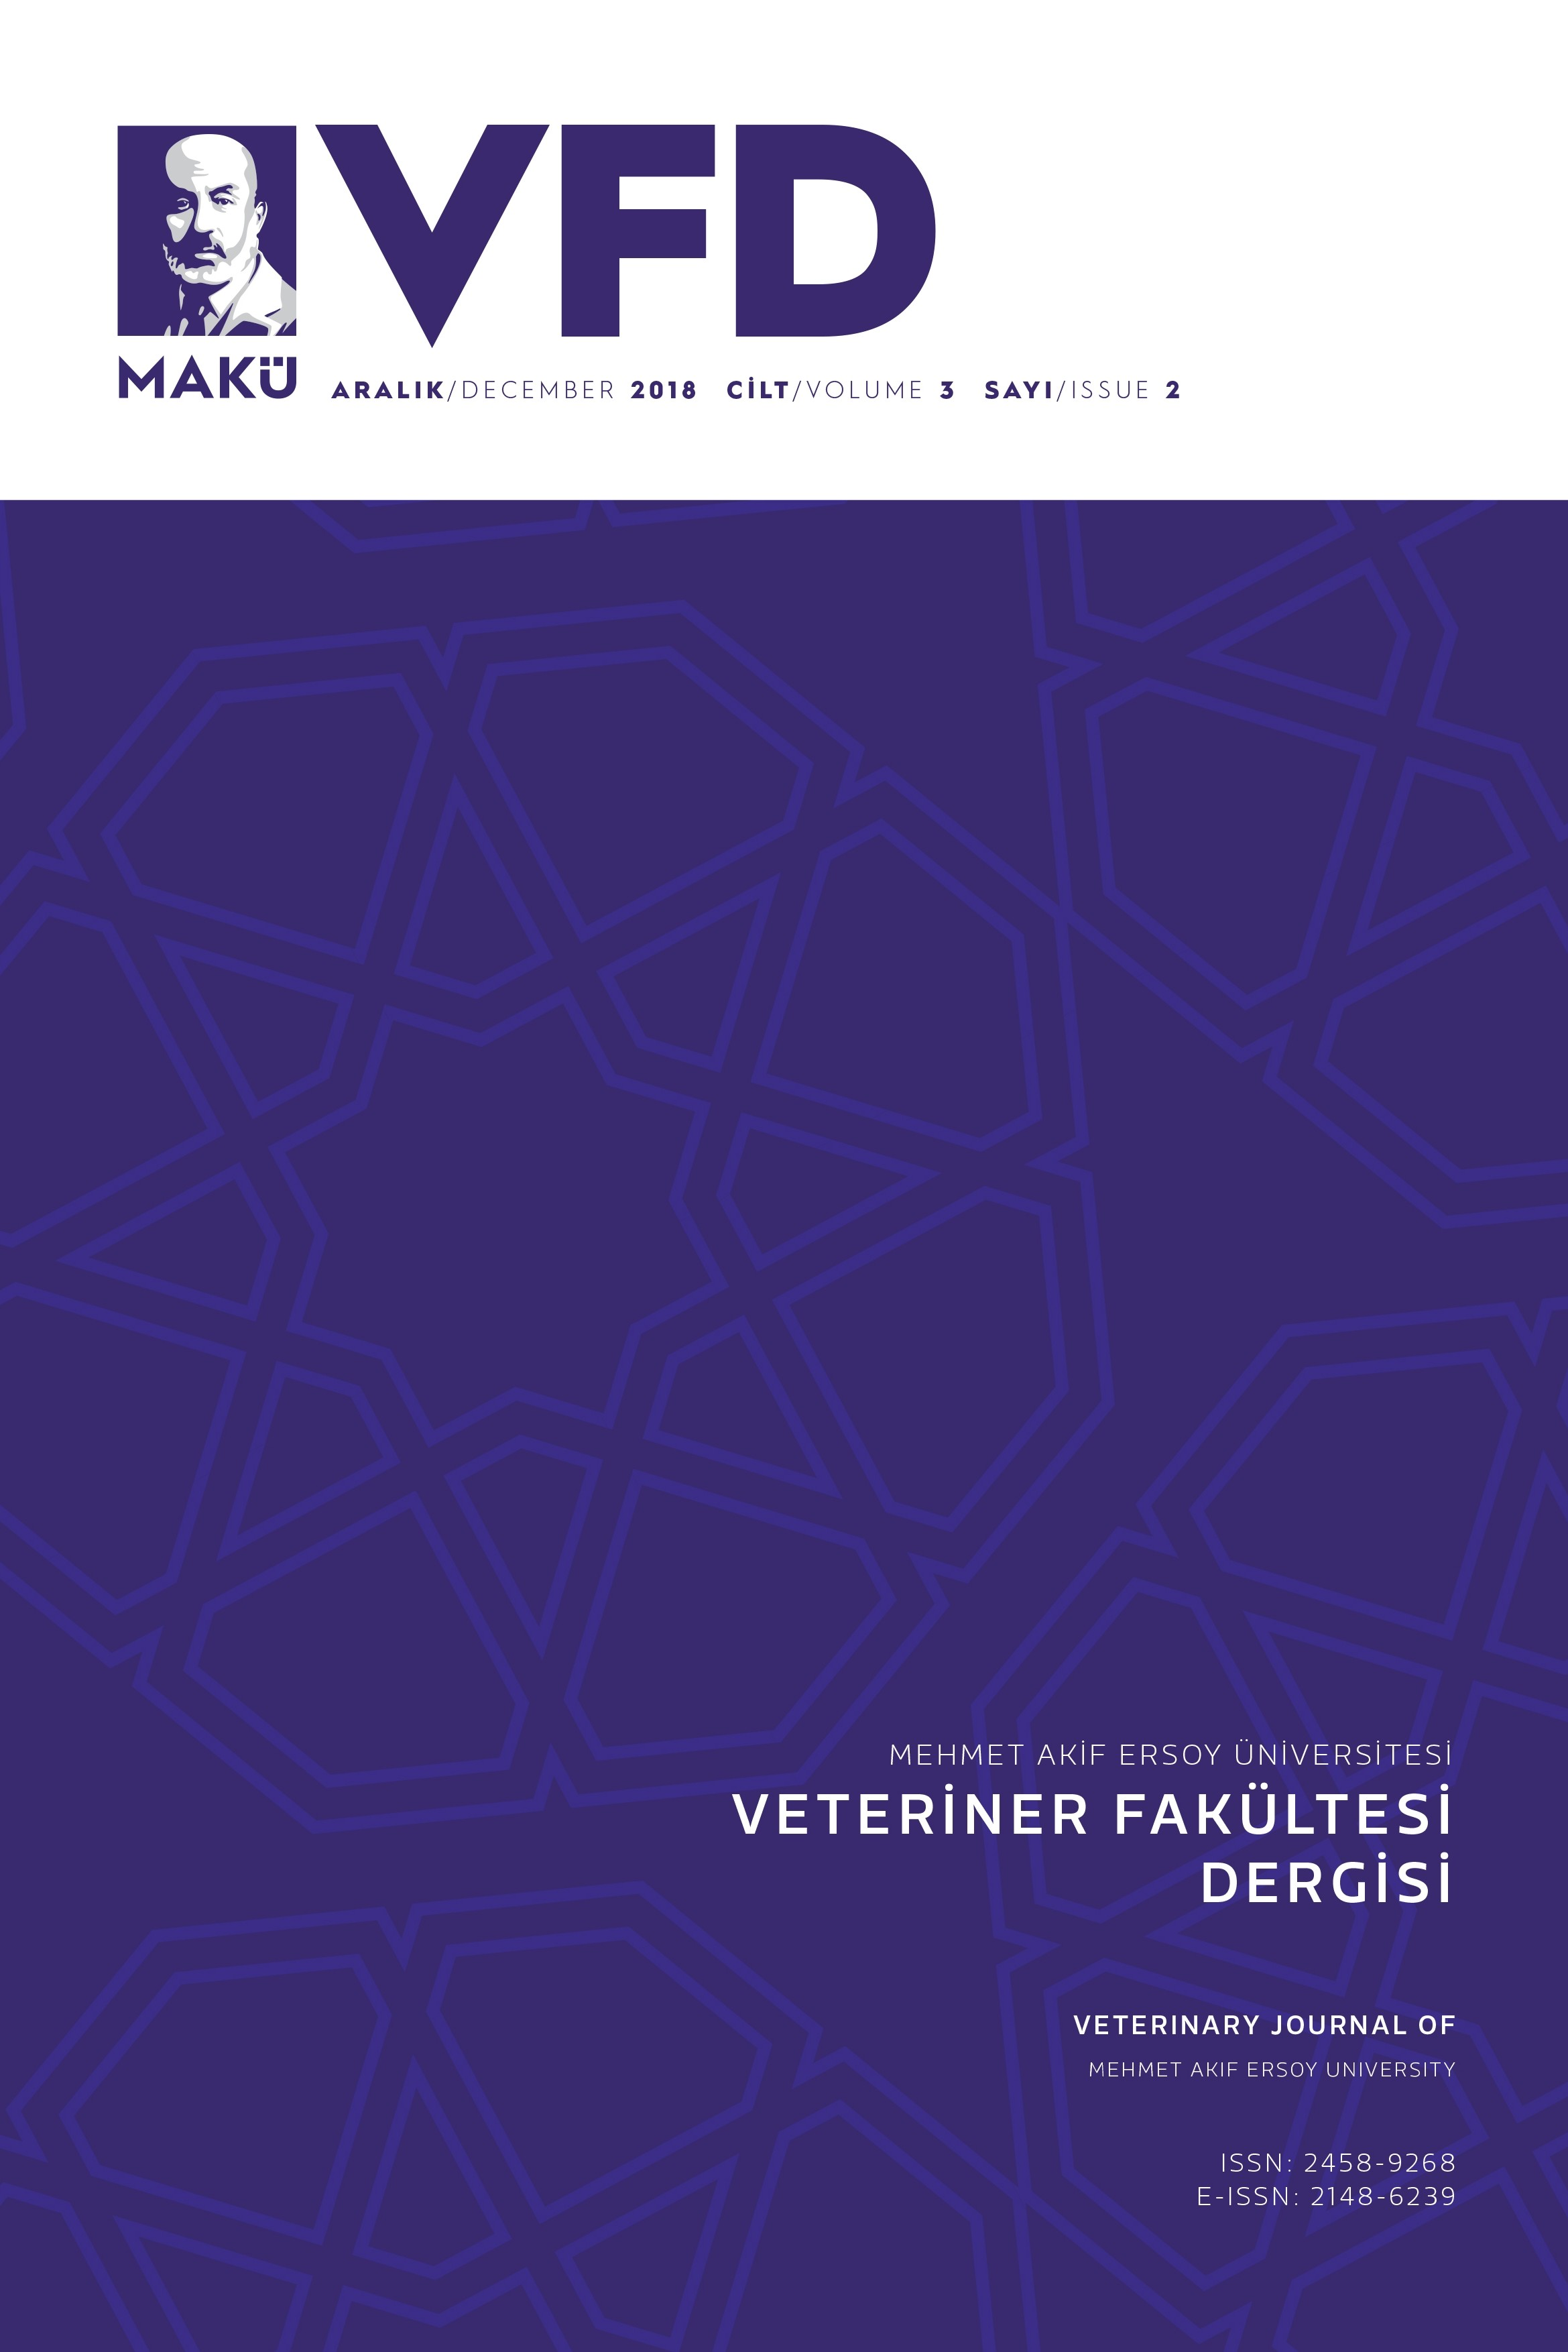 Veterinary Journal of Mehmet Akif Ersoy University